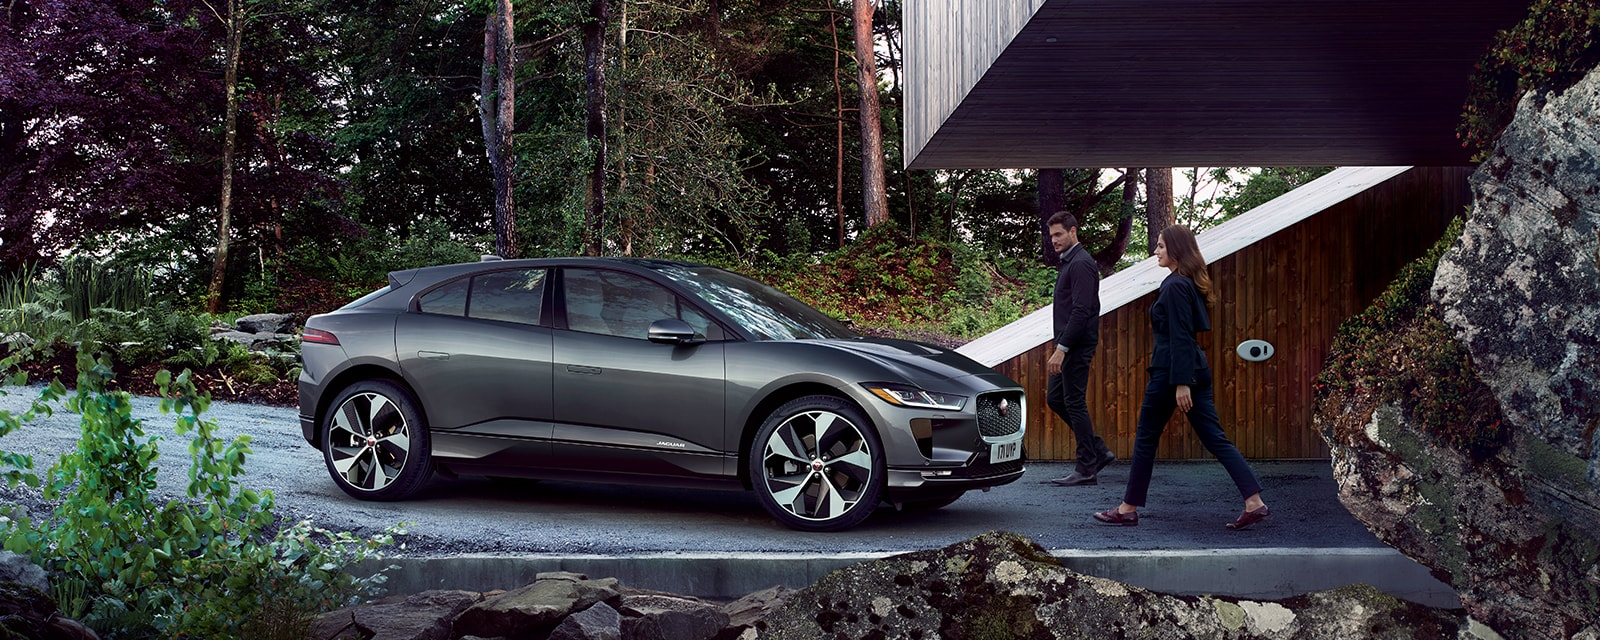 jaguar i pace hatch 4d 2019 header